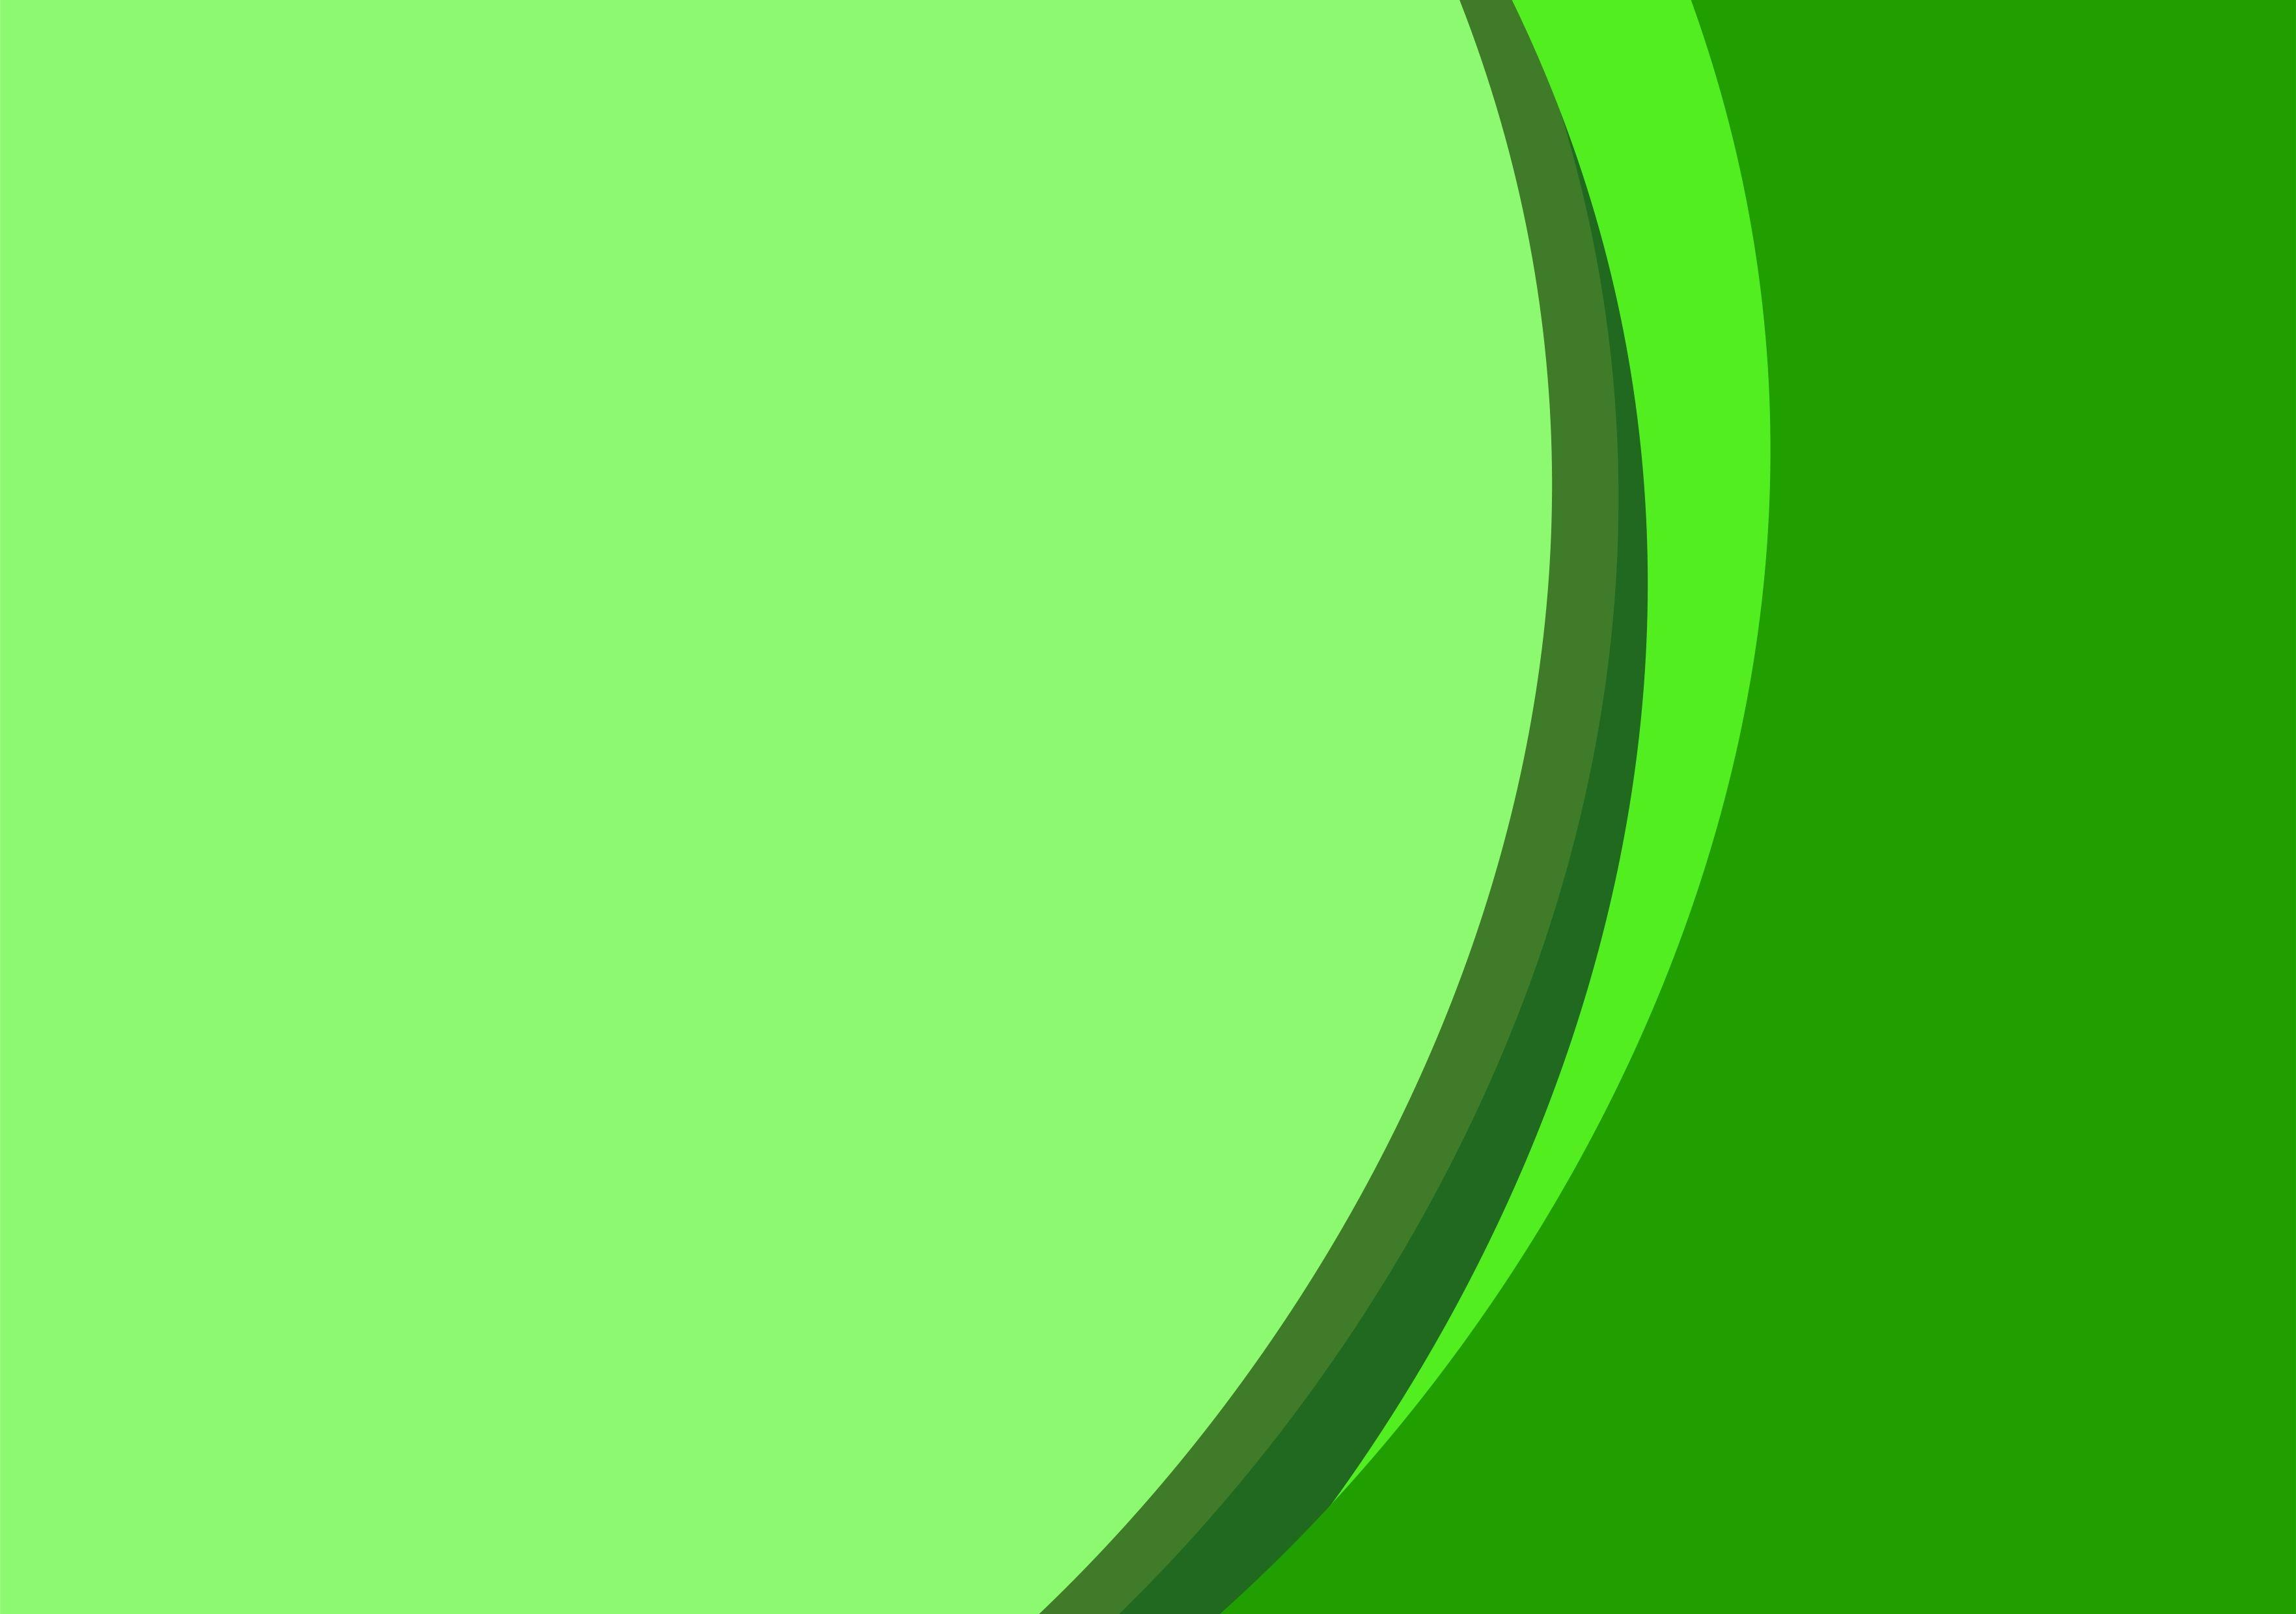 green background backgrounds simple clip vector wallpapercave